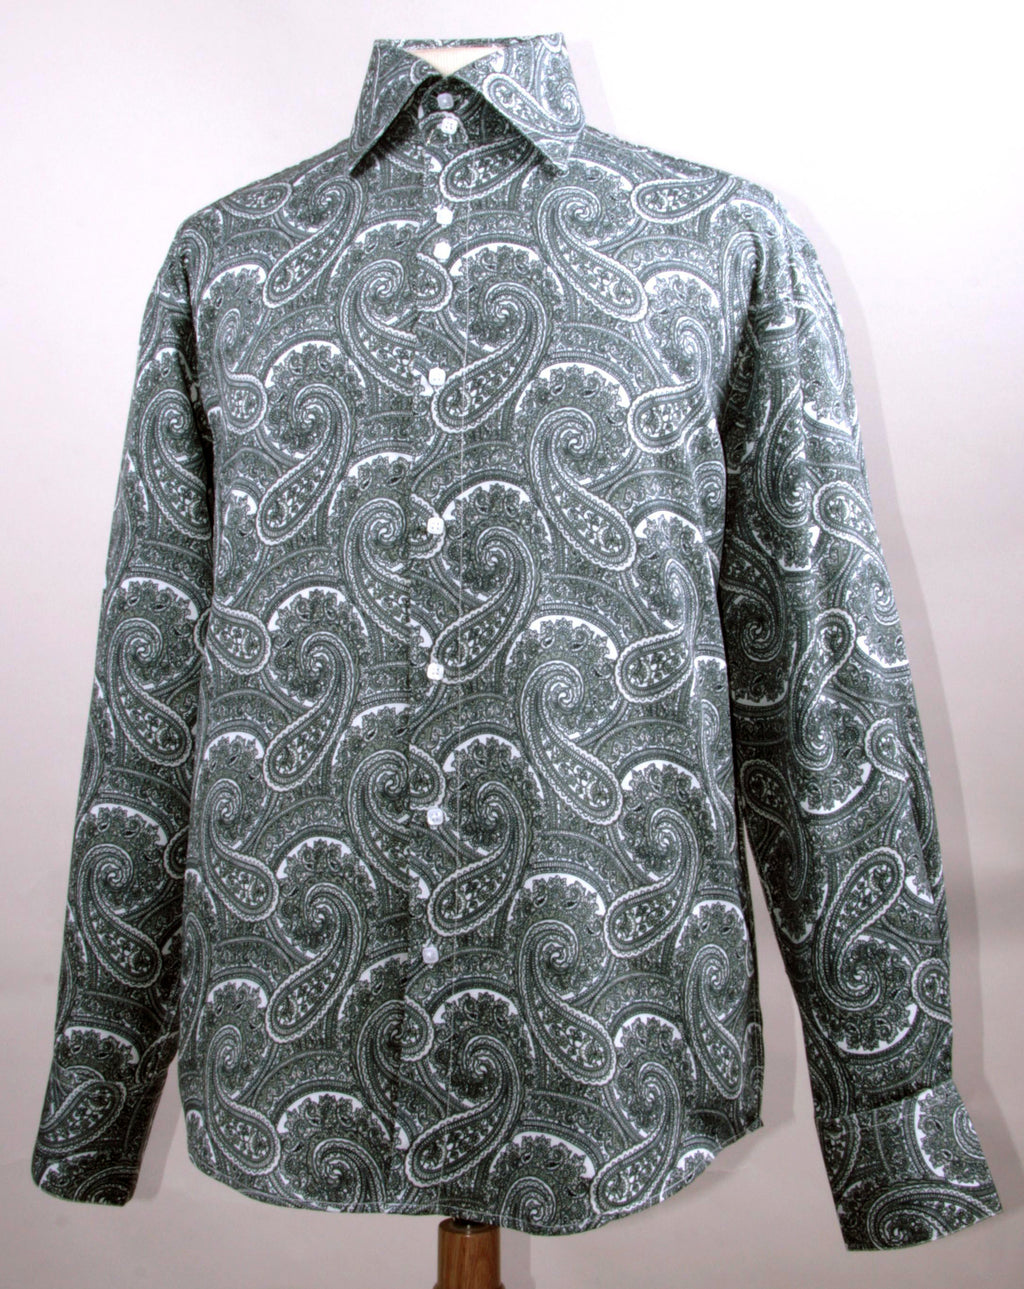 Dress Shirt Regular Fit Paisley Pattern in 3 Colors - Mens Suits